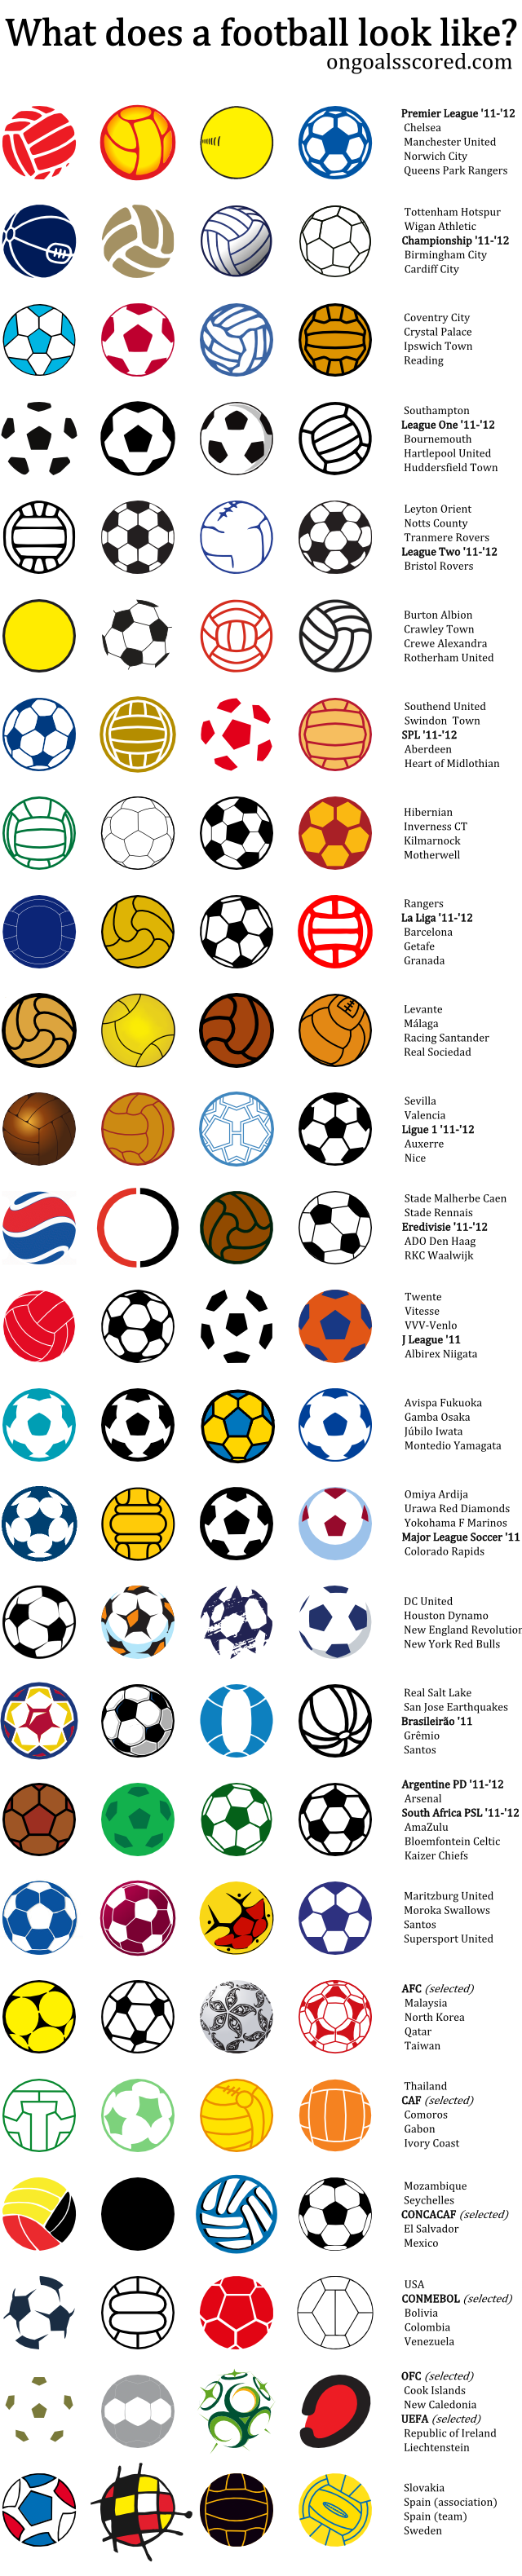 What Does A Football Look Like Soccer Logo Football Design Soccer Inspiration